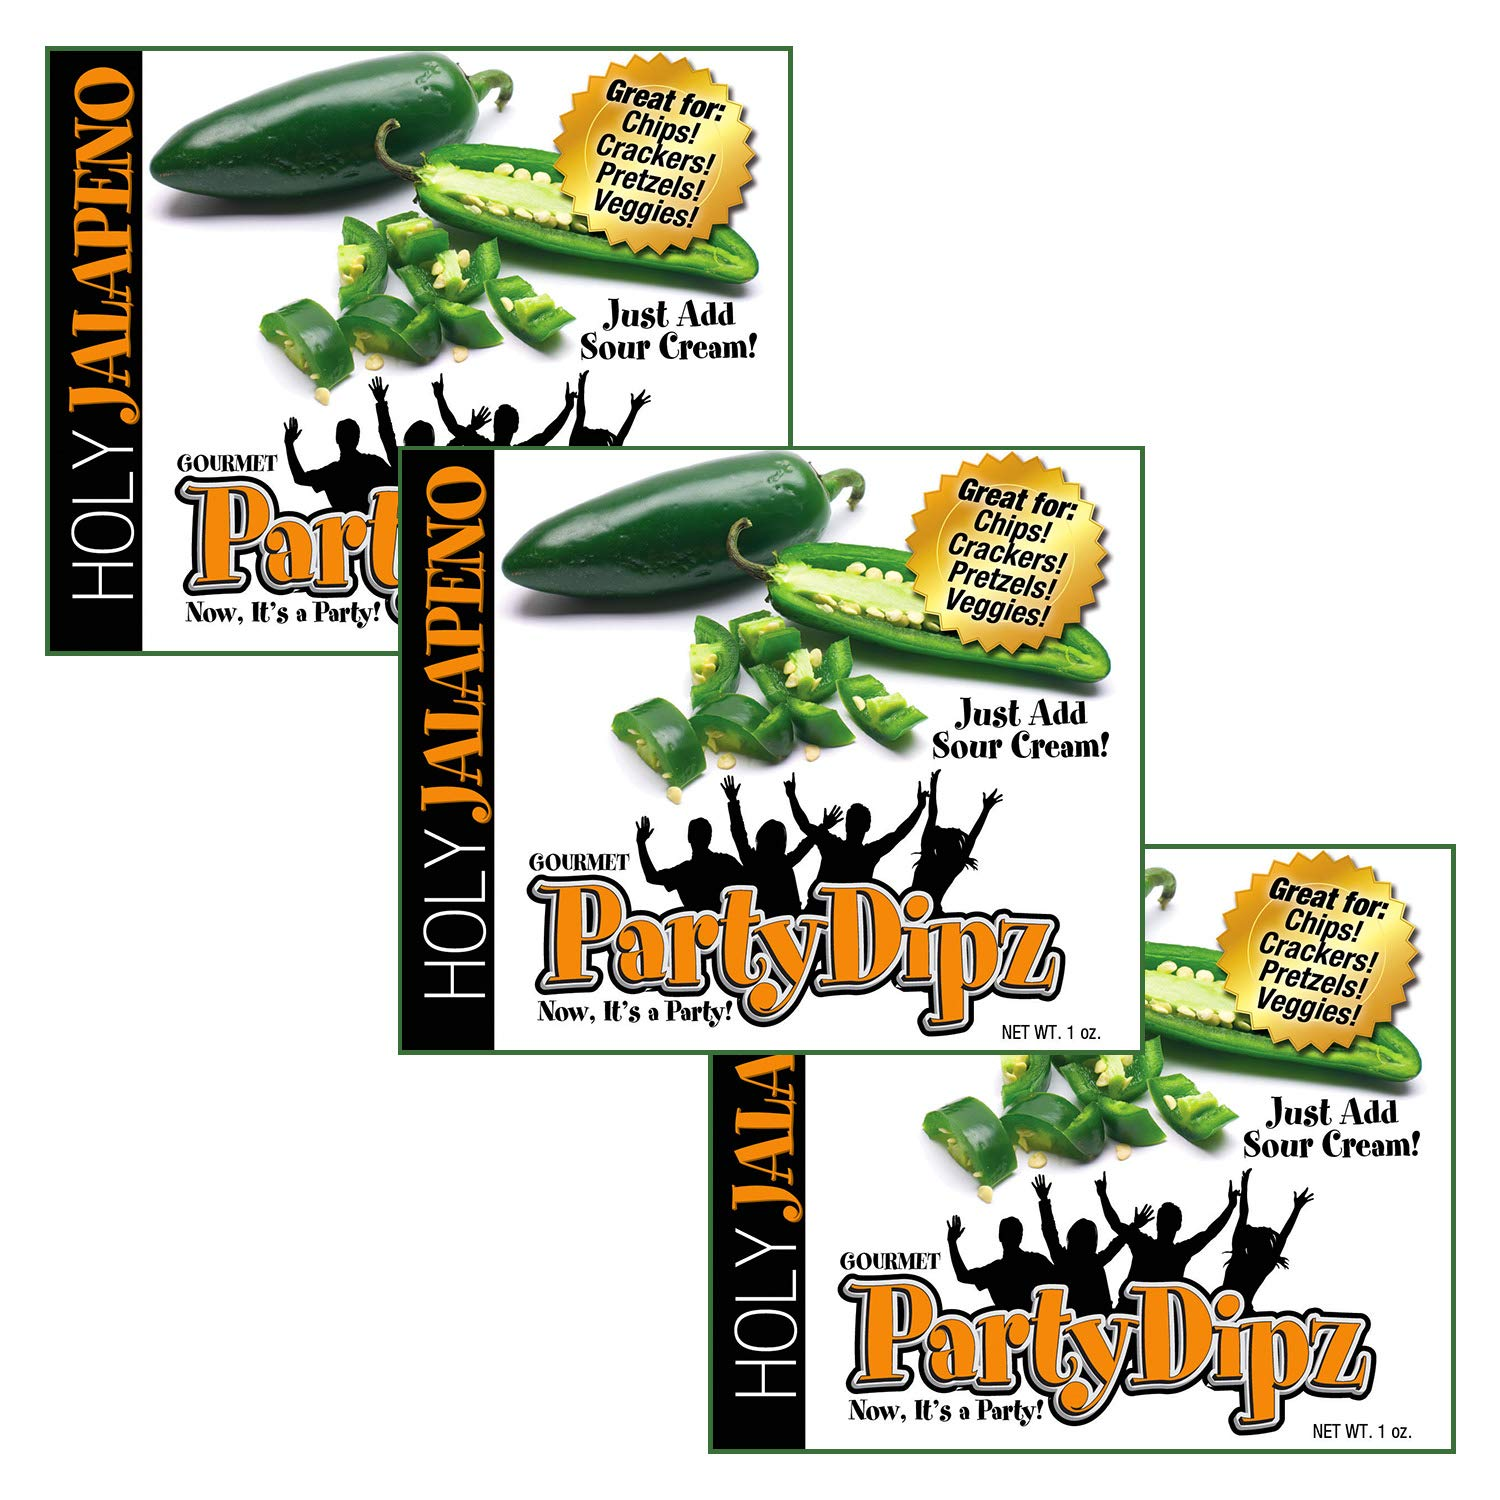 NEW ITEM: 3-Pak PartyDipz Holy Jalapeno Gourmet Dip Mix Packets Dips For Chips Dips For Spreads Bacon Dip Cheddar Dip Great Gift Idea by PartyDipz